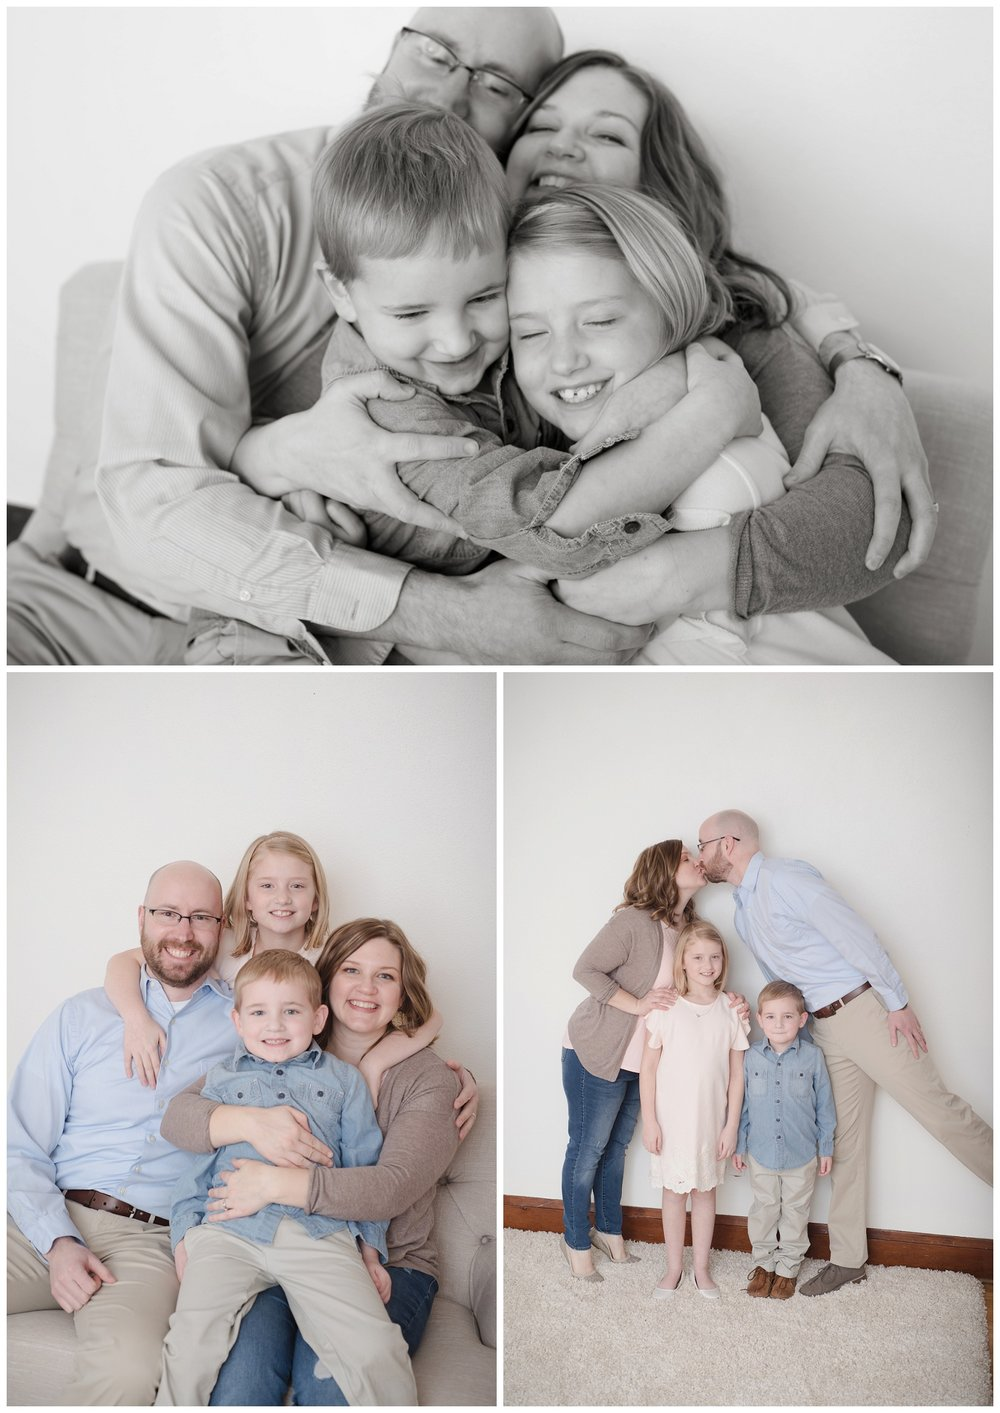 Gianna's Photography Portrait Family Studio Photographer Medina Minnesota